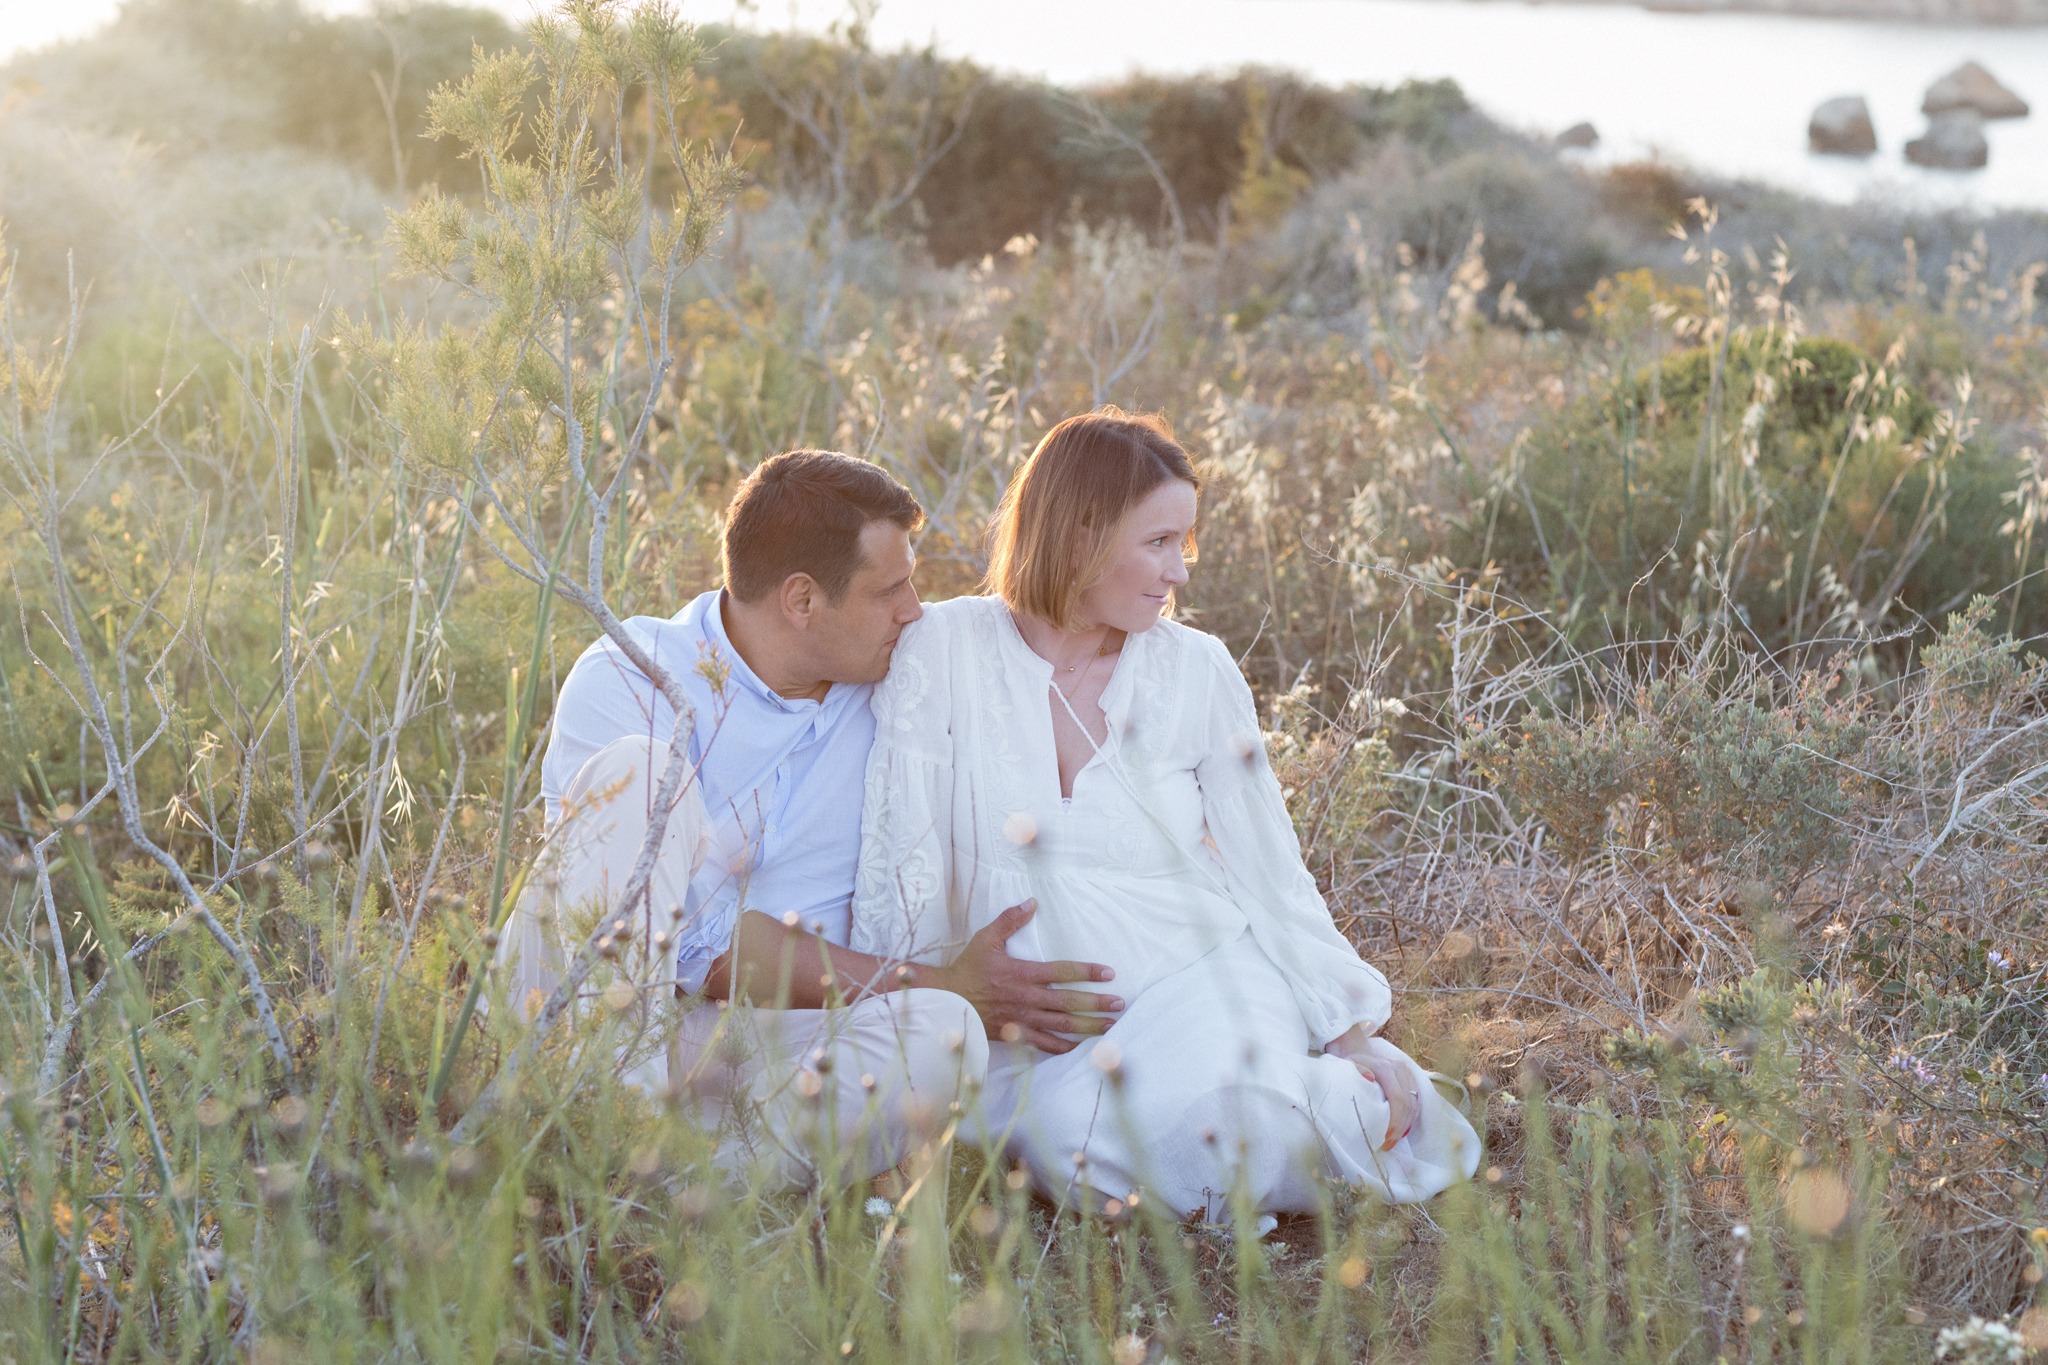 cuddling parents, parents to be, first baby, mountains of riviera bay, high grass, sunsetting, backlight, maternity photo shoot malta